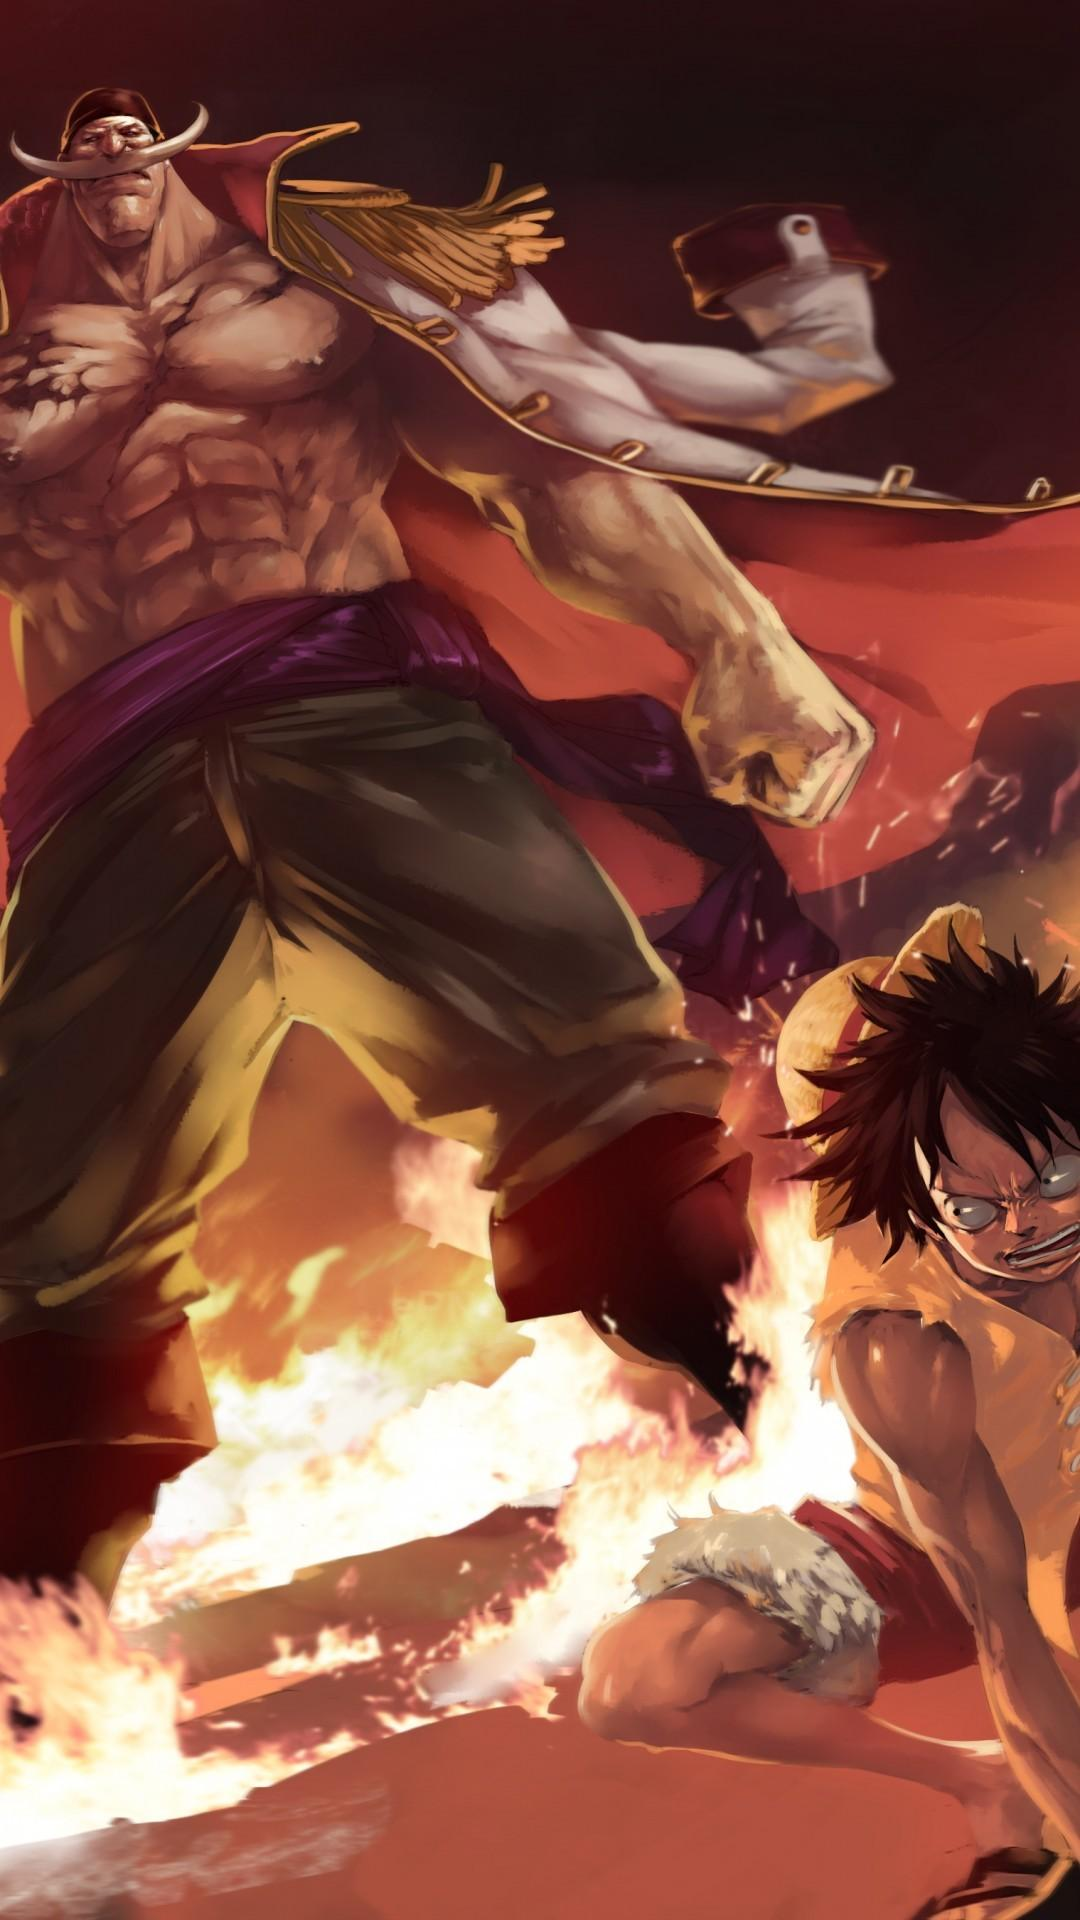 Download 1080x1920 One Piece, Monkey D. Luffy, Whitebeard